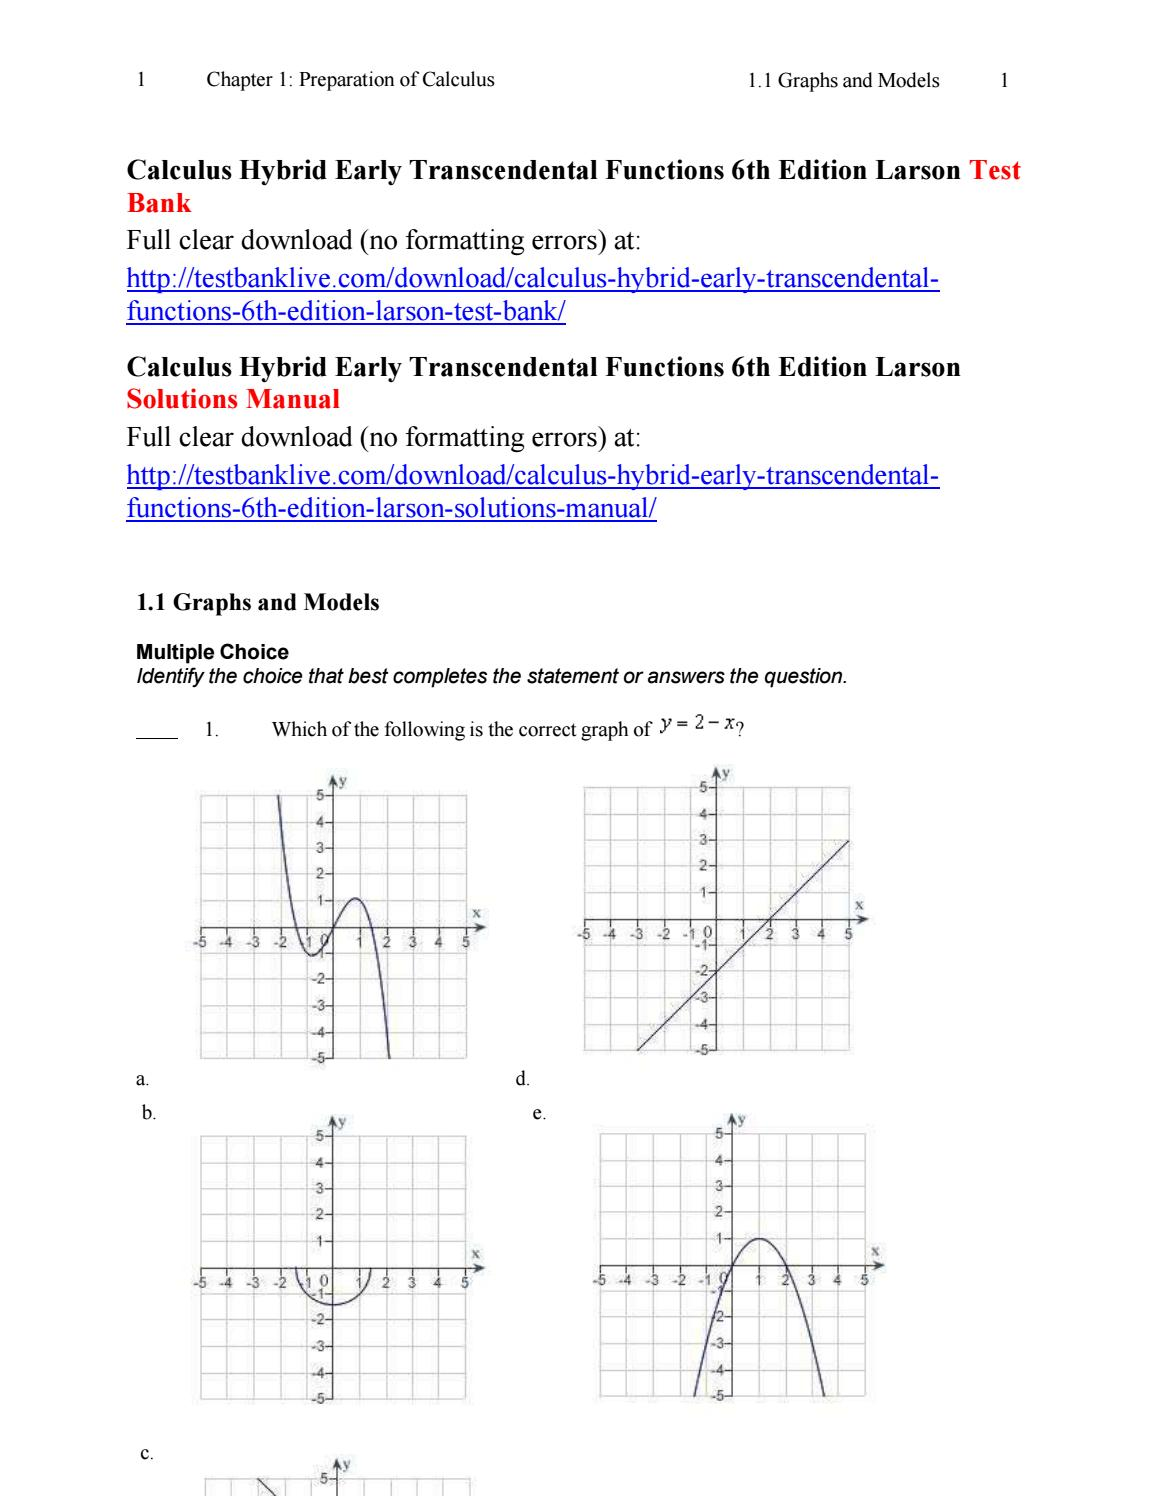 Calculus hybrid early transcendental functions 6th edition larson test bank  by FGzz - issuu